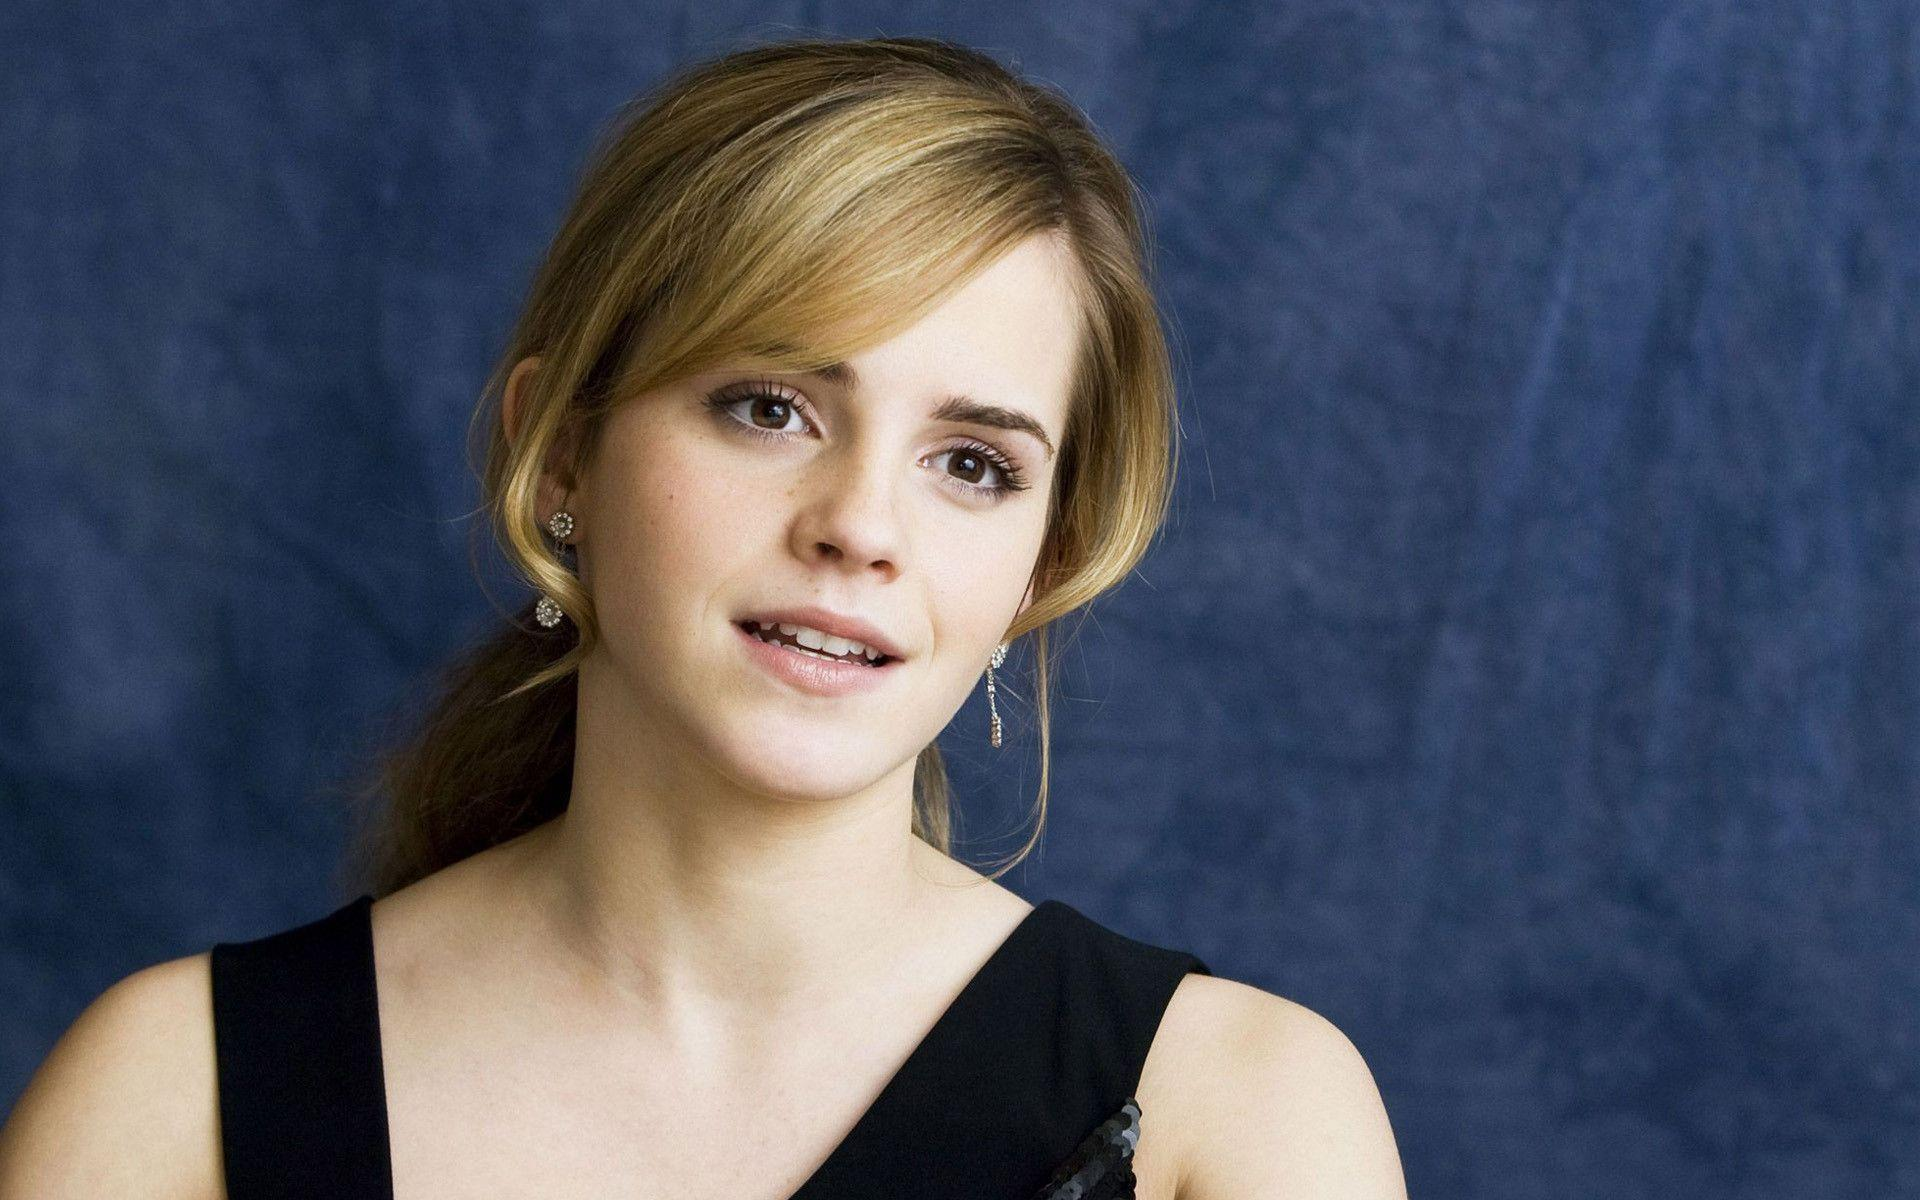 Emma Watson Wallpaper | Bulk HD Wallpapers